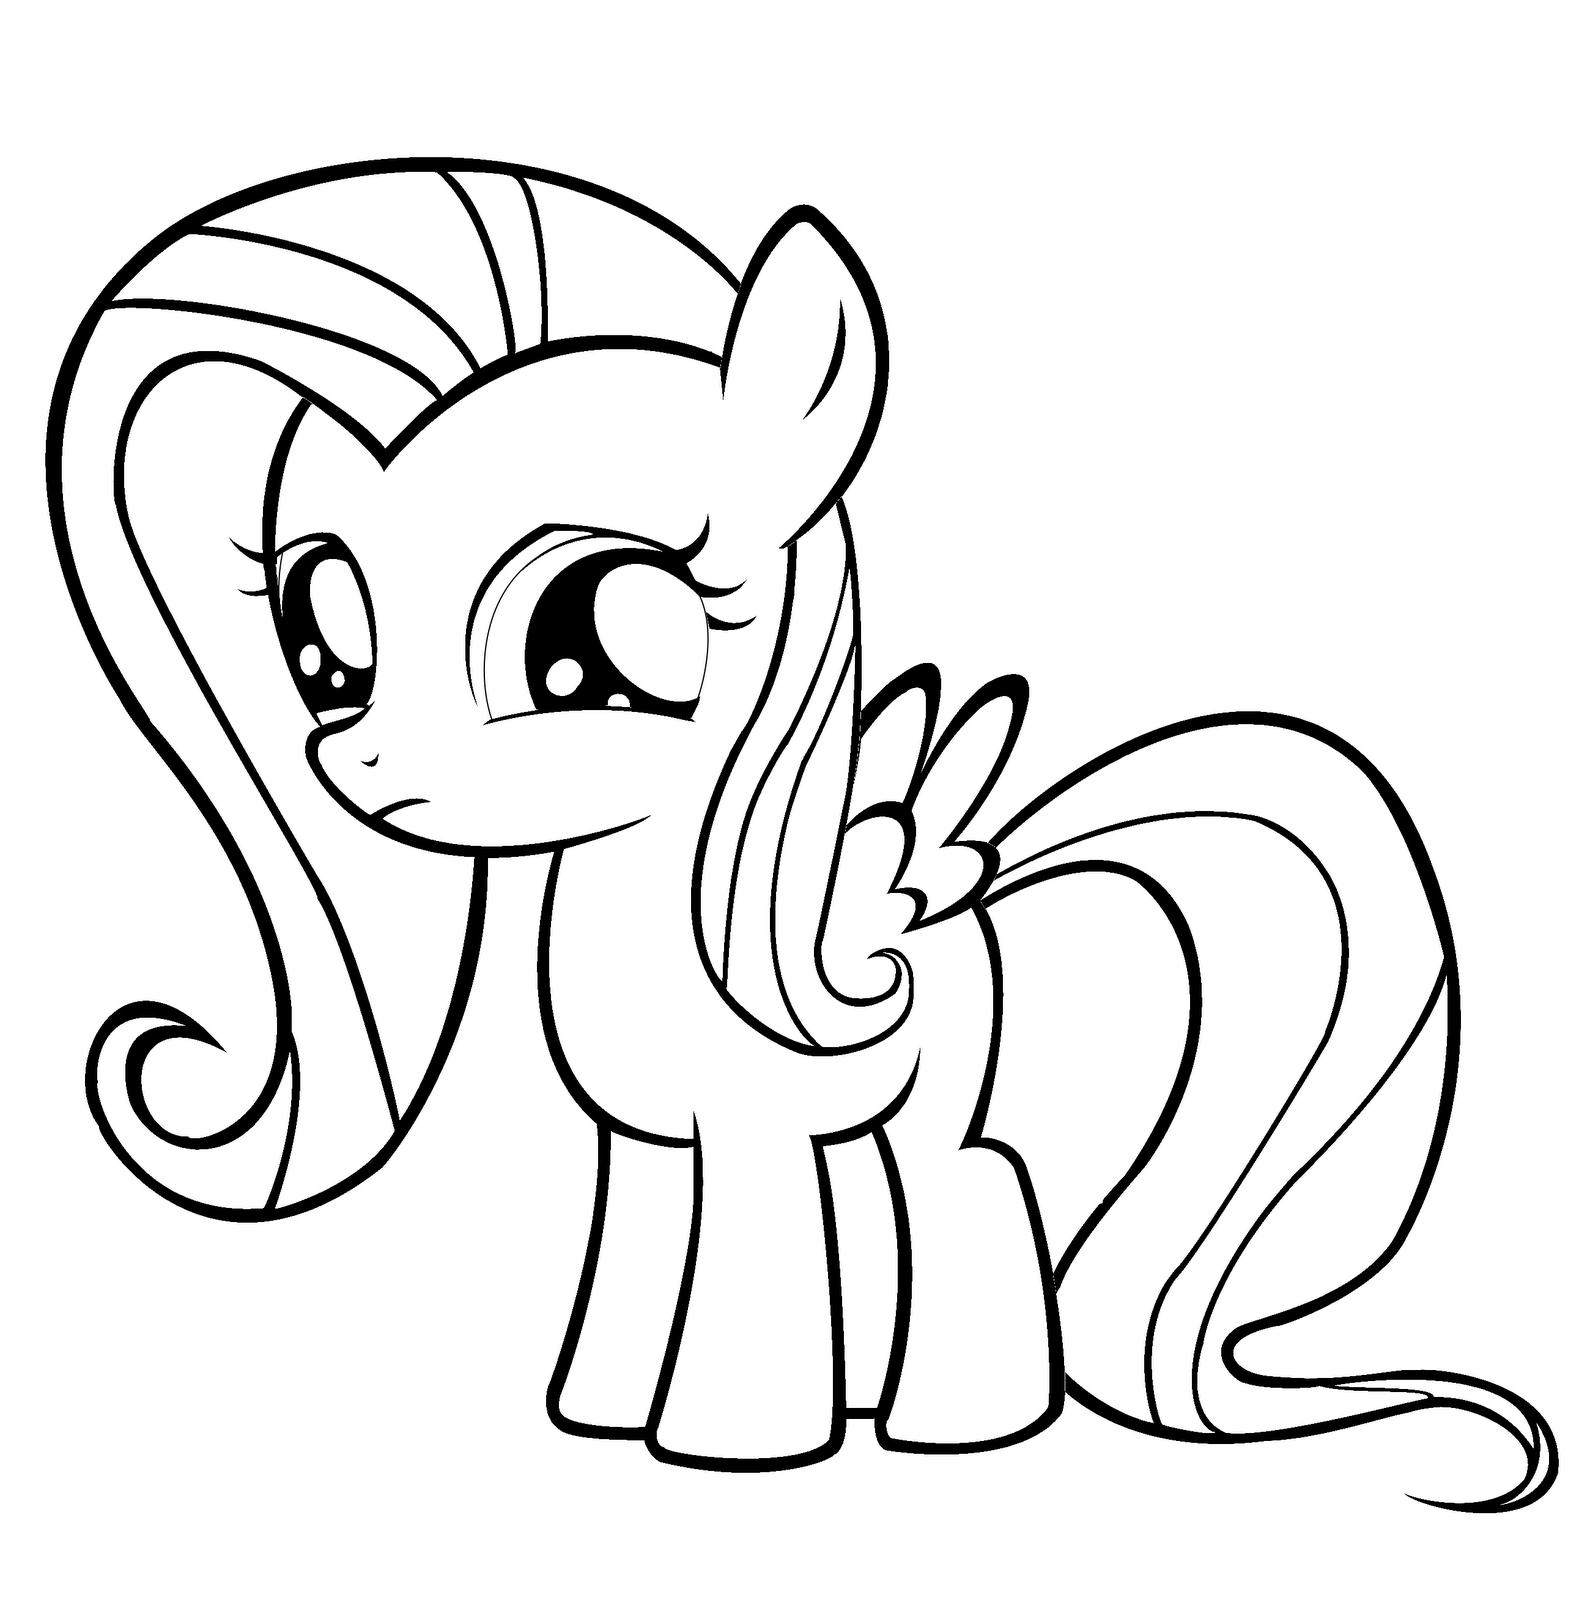 Uncategorized Baby My Little Pony Coloring Pages baby my little pony coloring pages murderthestout of fluttershy check out the finished image on my